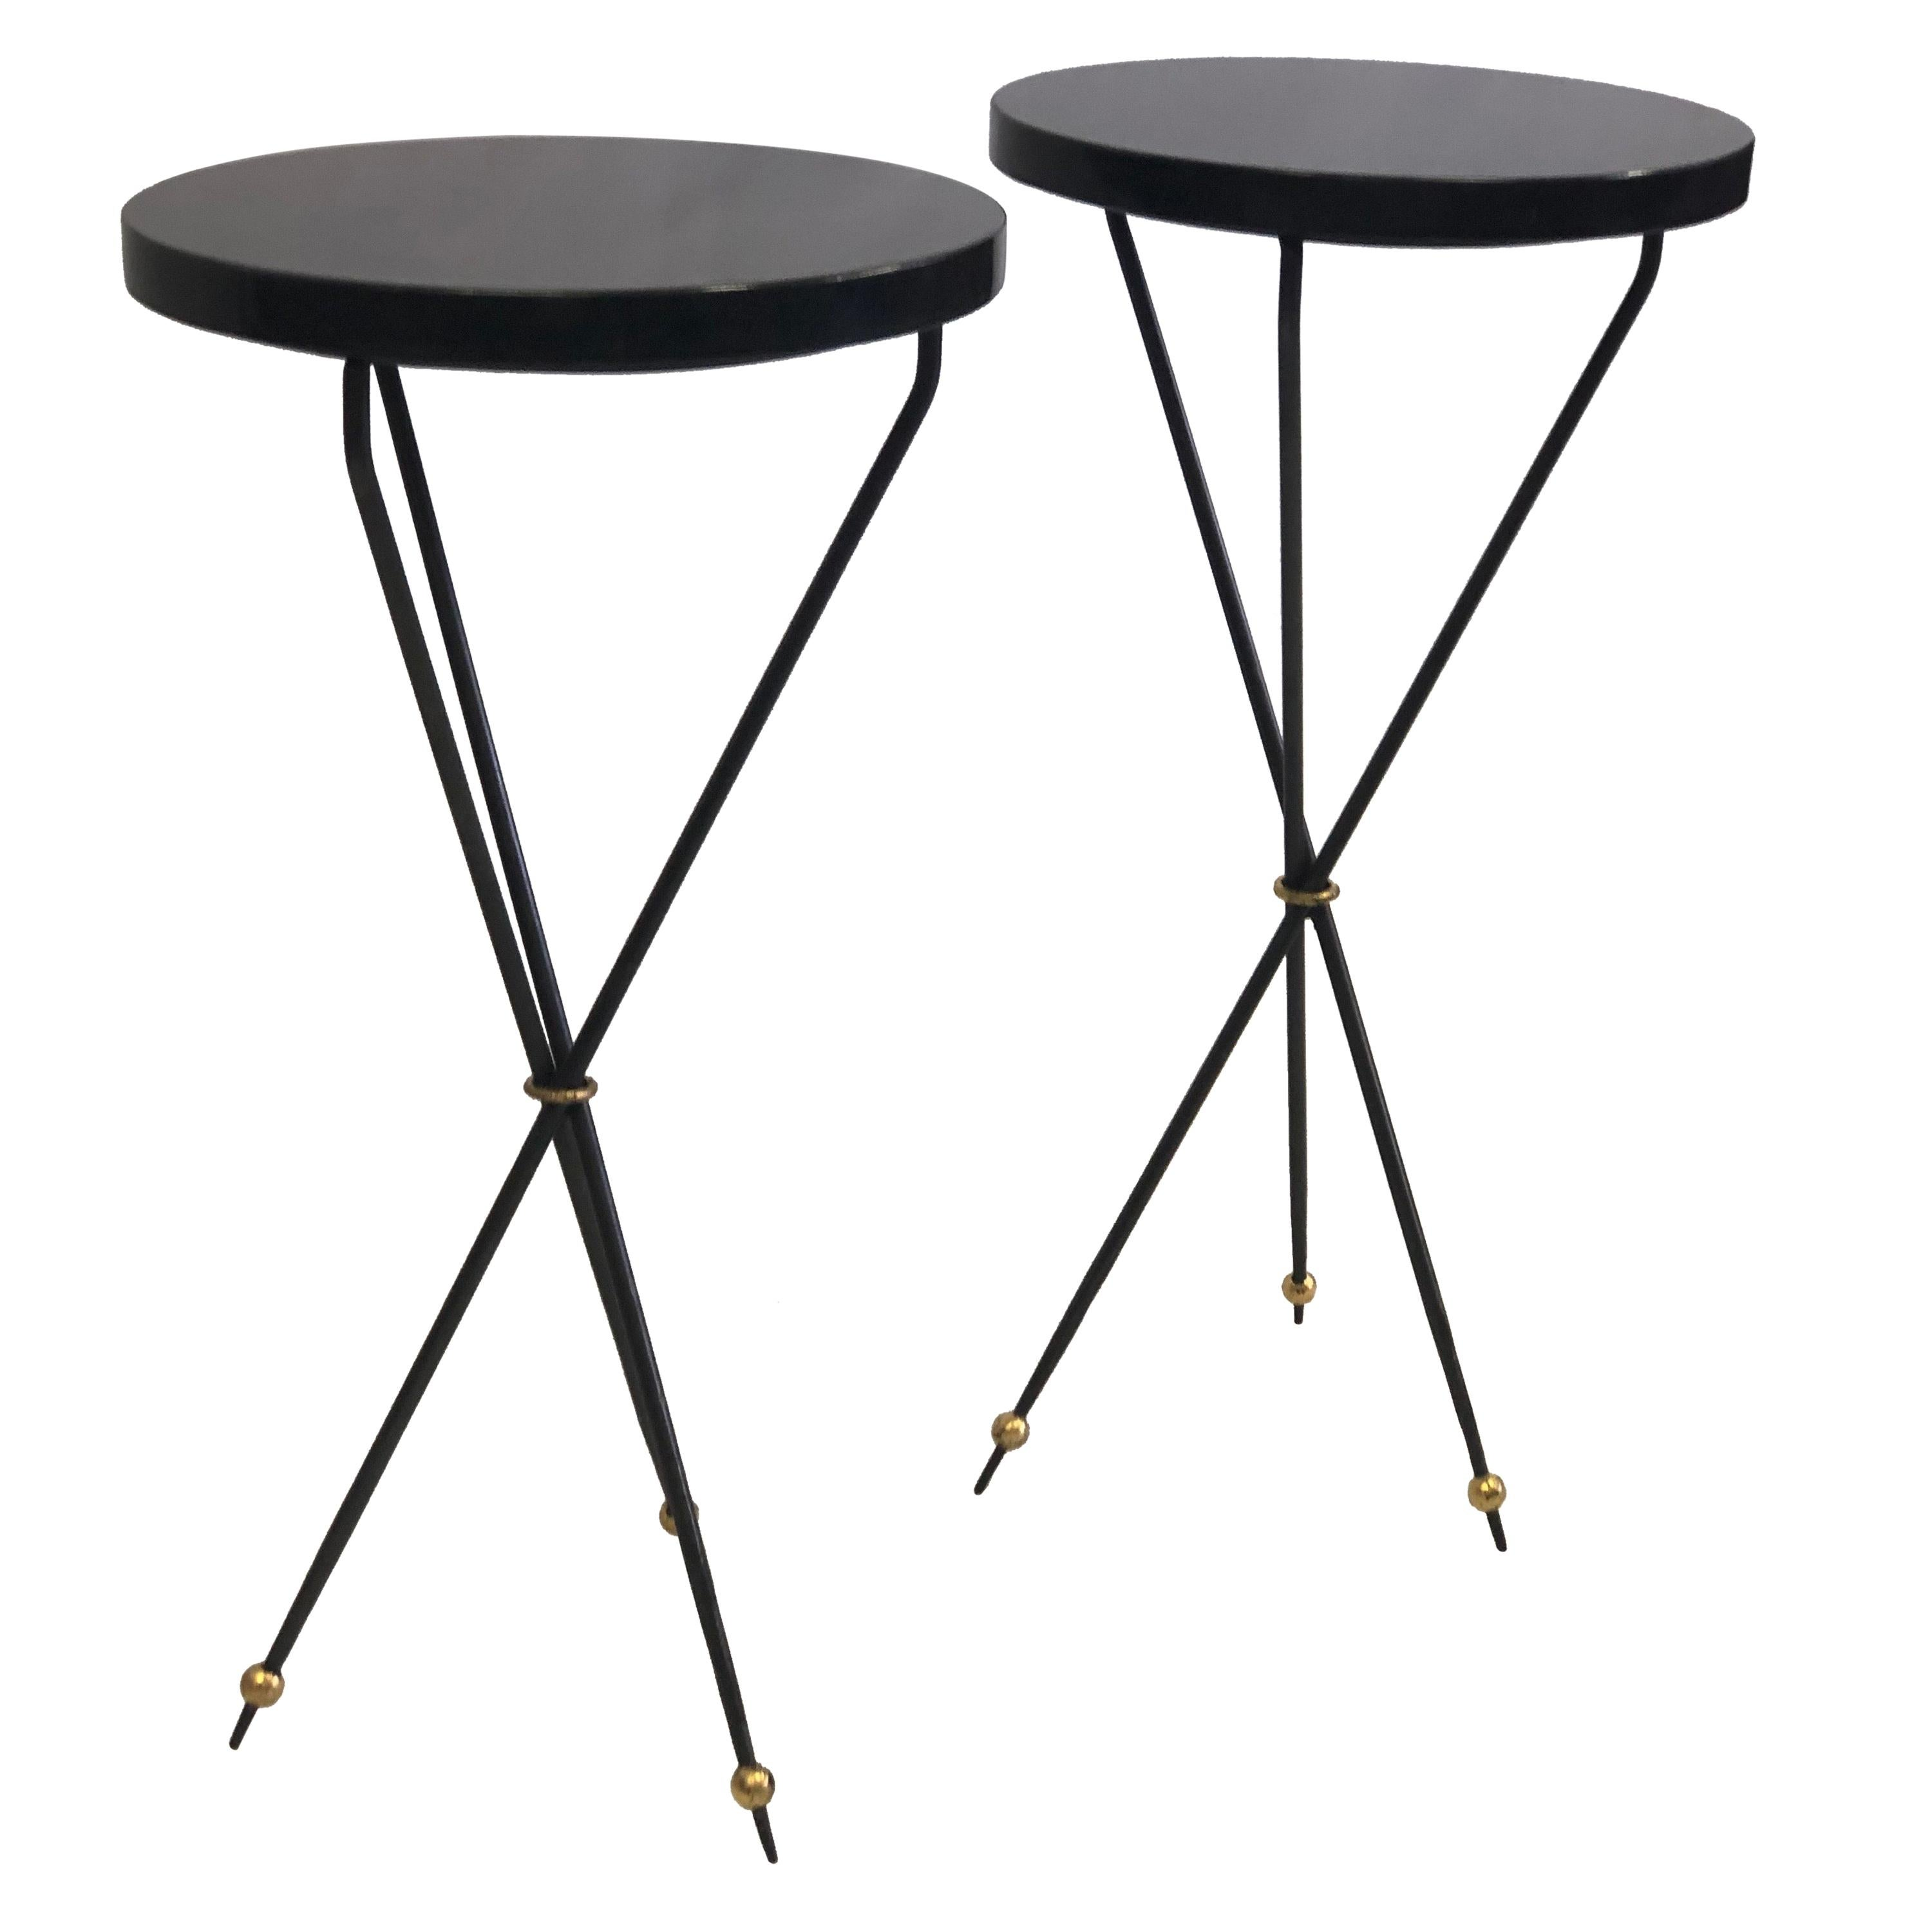 Pair of French Modern Neoclassical Wrought Iron Side Tables, Jean Michel Frank